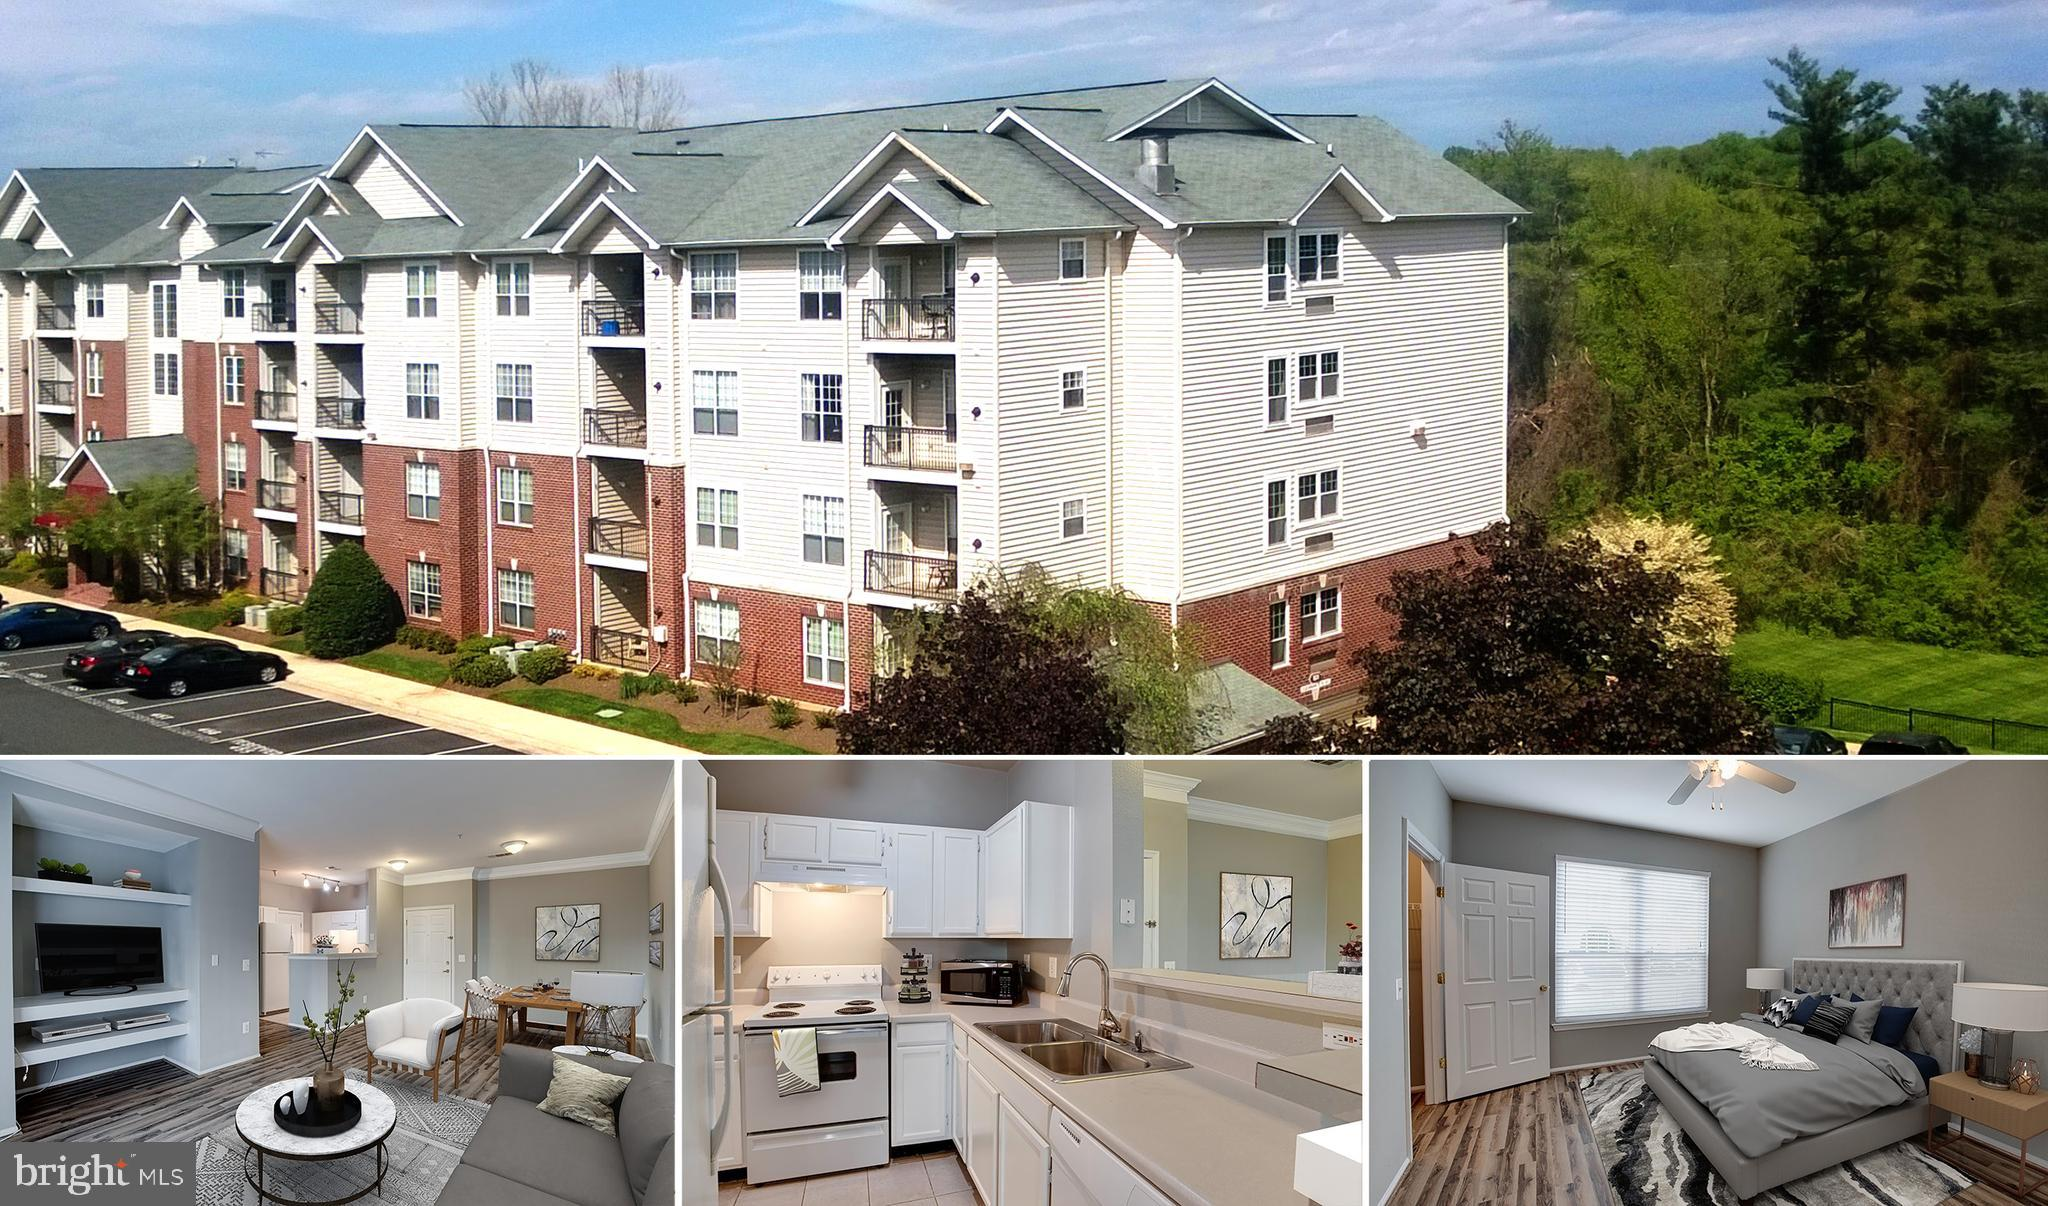 Large and wonderful 1 bedroom condo - walk to McLean Silver Line metro + Wegmans across the street. The unit has laminate floors and newer windows and is in a controlled access building. Larger 735 sq/ft Danielle model. 1 reserved parking spot + 2 guest tags. The Gates of McLean is a gated community with great amenities like an outdoor swimming pool, gym, clubhouse, sports court, grill area and walking paths. Minutes to everything in Tysons and minutes from toll road. (virtually staged images.)